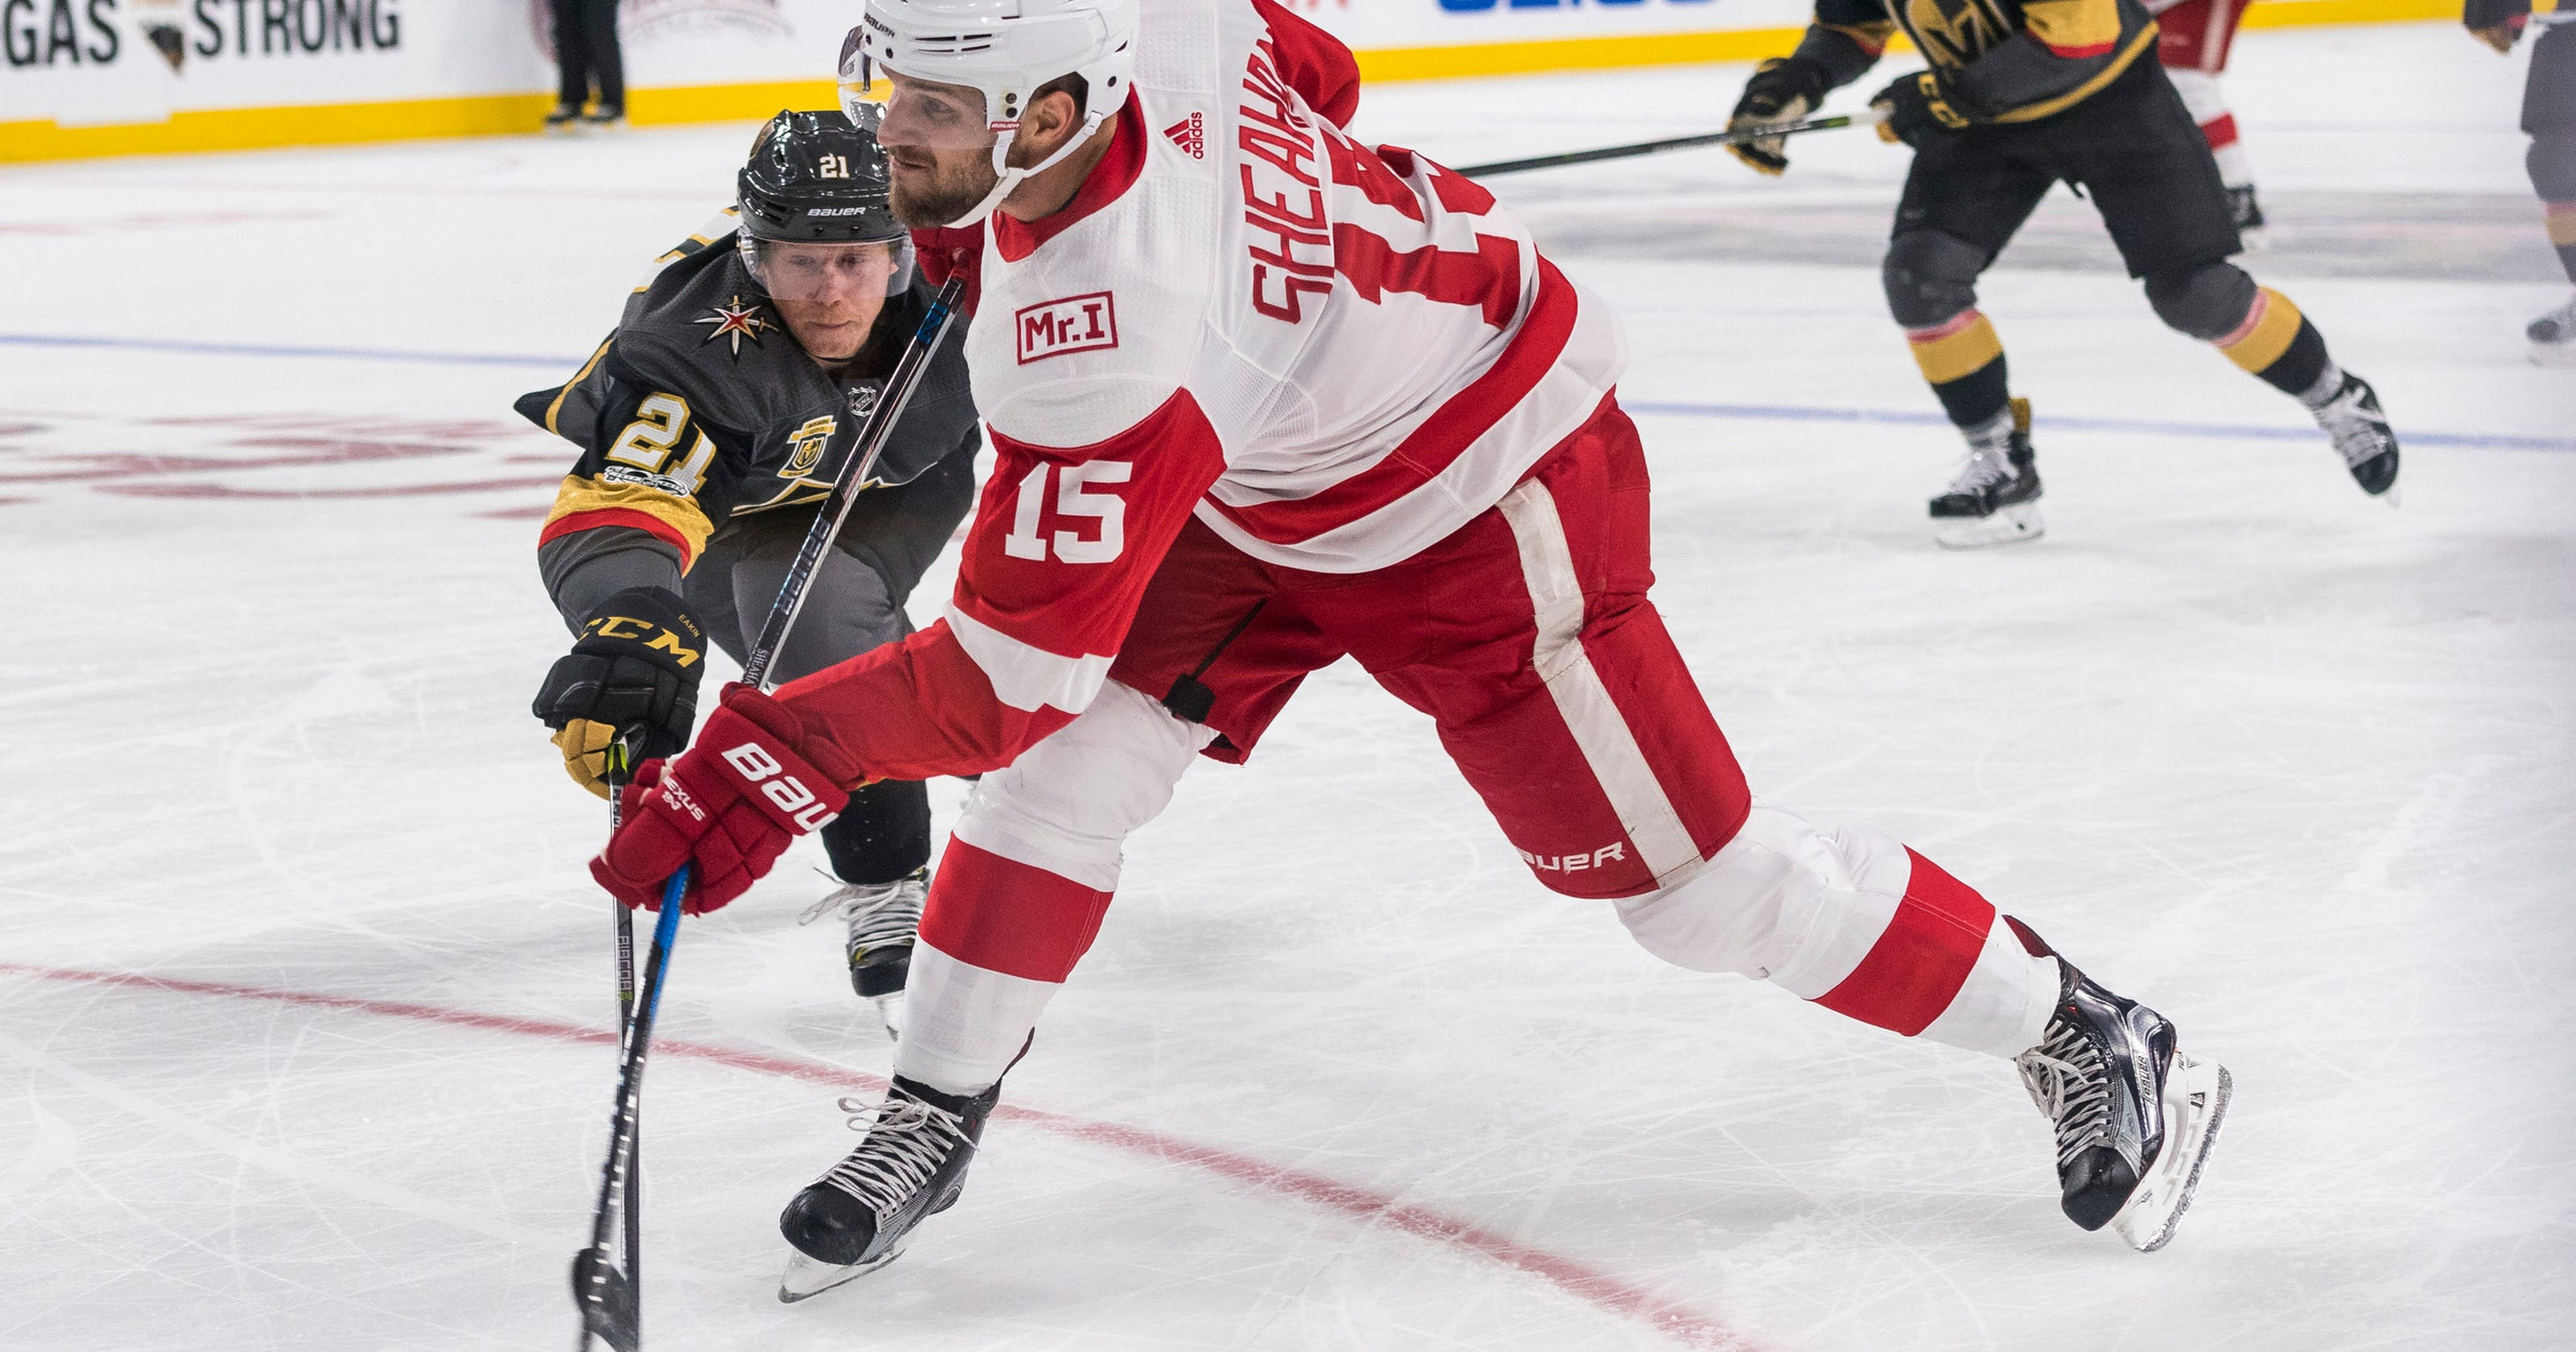 Red Wings trade Riley Sheahan to make cap space for Andreas Athanasiou df6f16f55